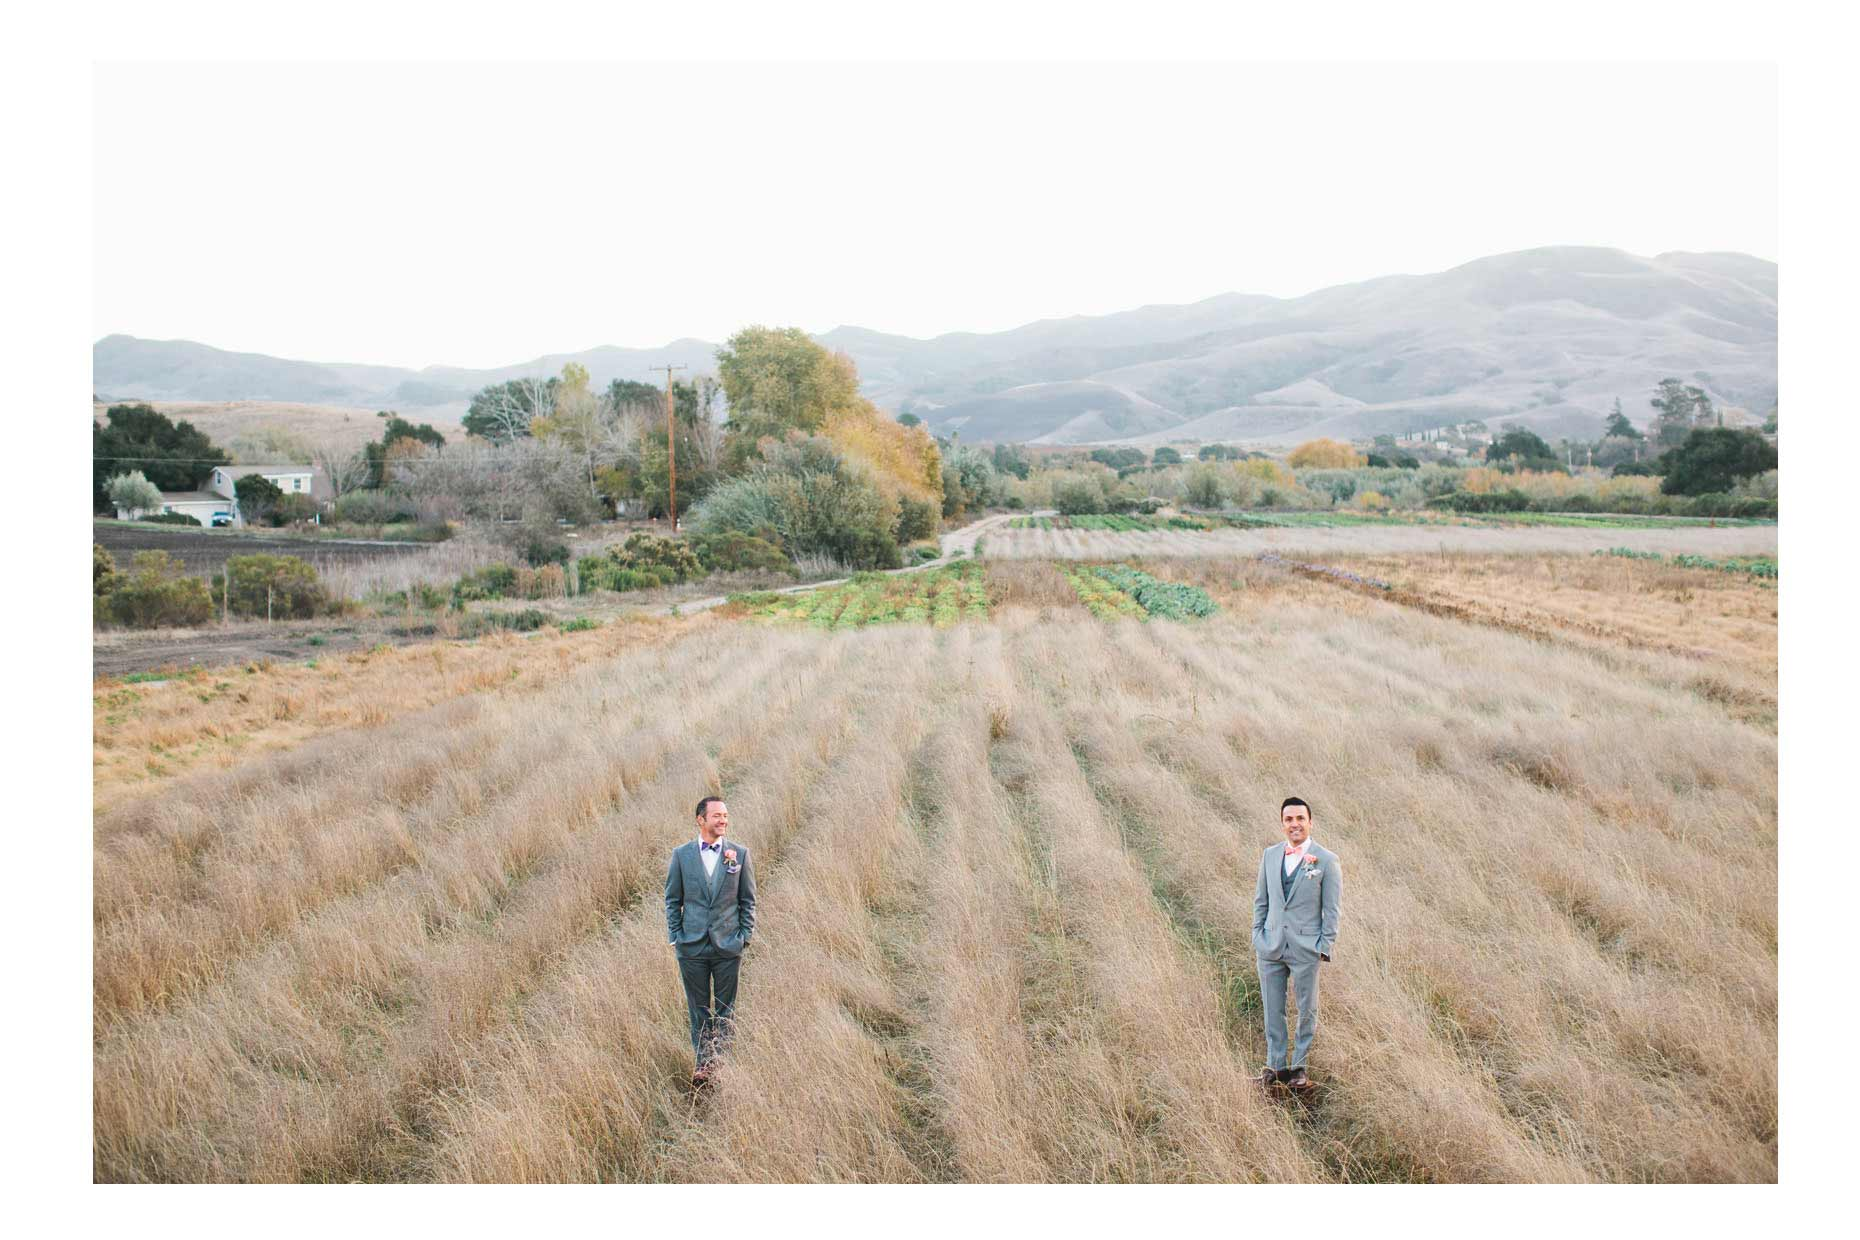 best creative wedding photographers in santa ynez santa barbara courthouse apple creek ranch Apple-Creek-Ranch-Wedding-by-Pierre-olivier-Photography-1